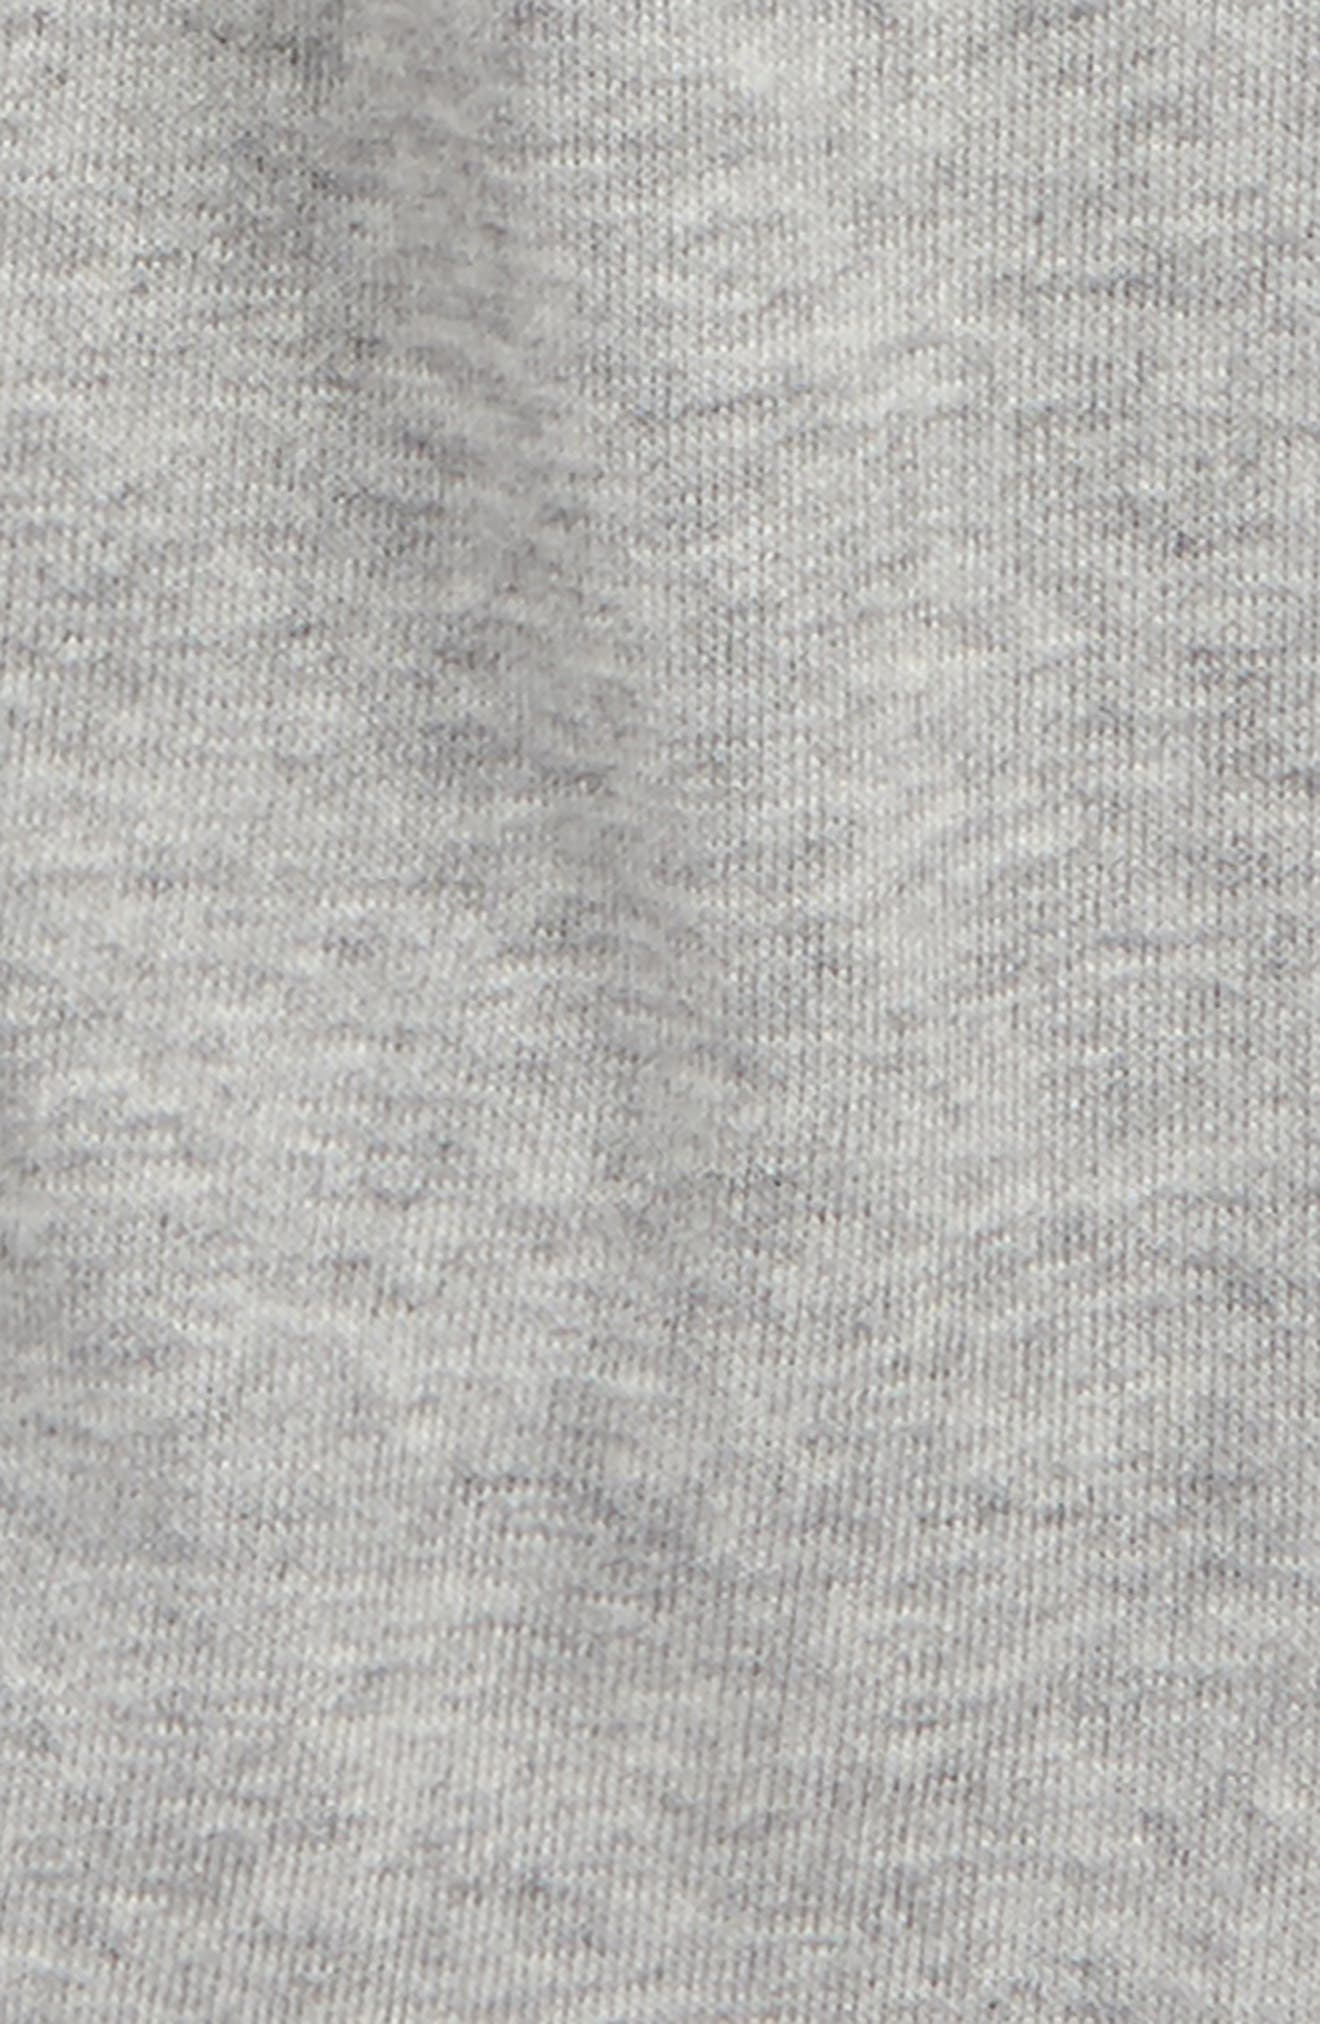 One On One Pants,                             Alternate thumbnail 2, color,                             Heather Grey